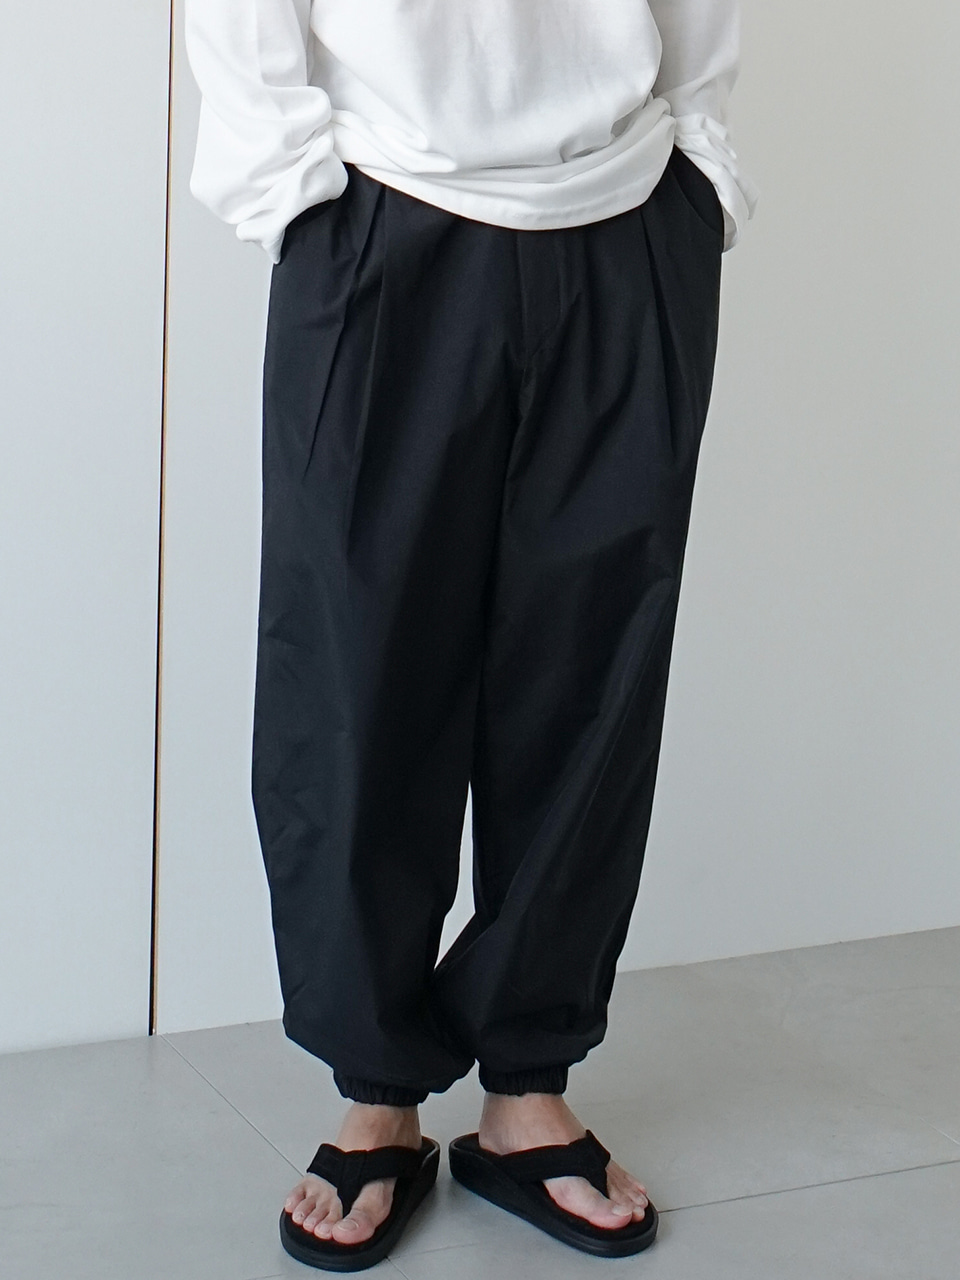 Edix Balloon Jogger Pants (2color)